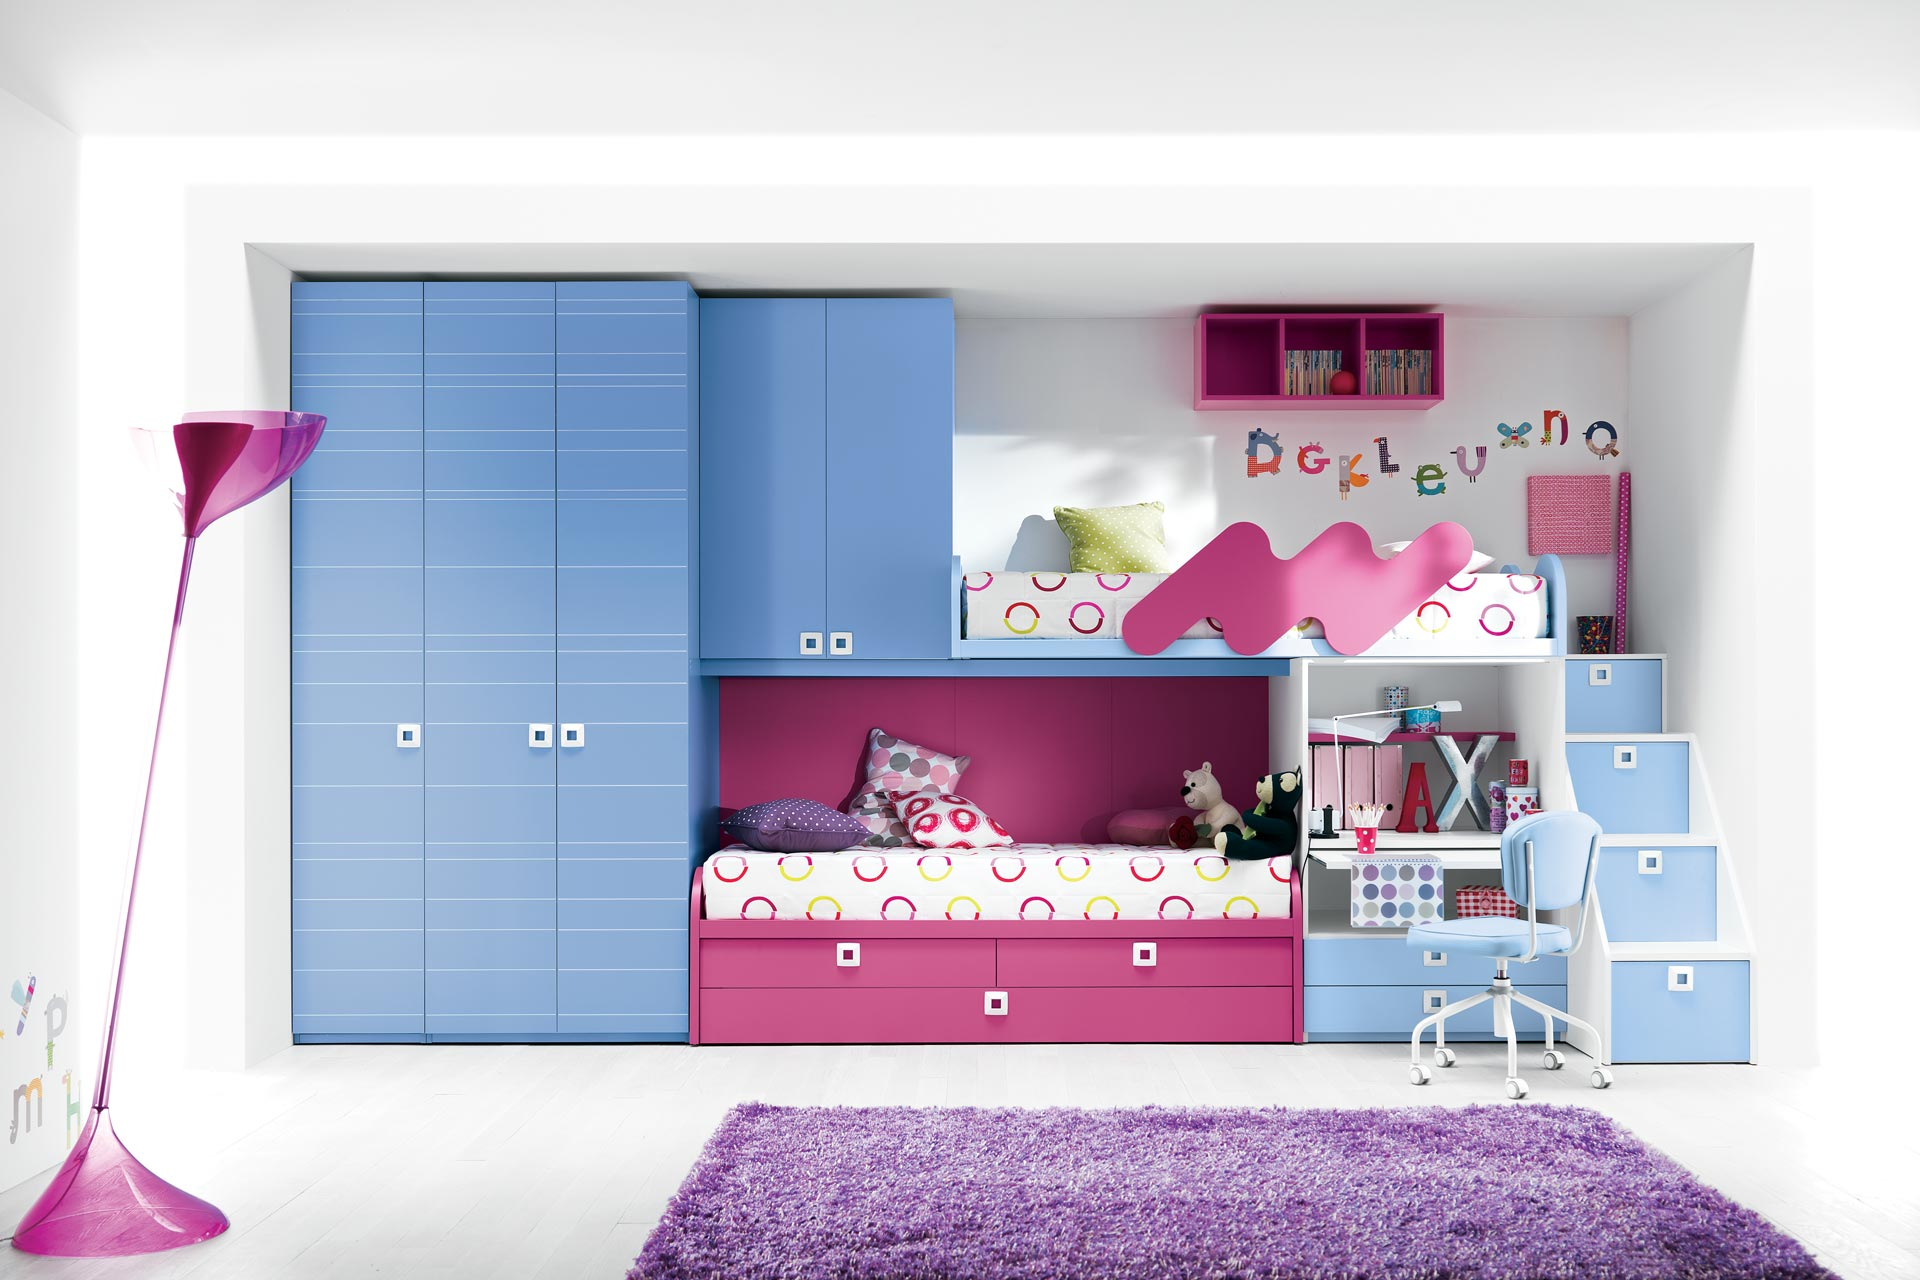 Cool Bedrooms with Bunk Beds for Girls 1920 x 1280